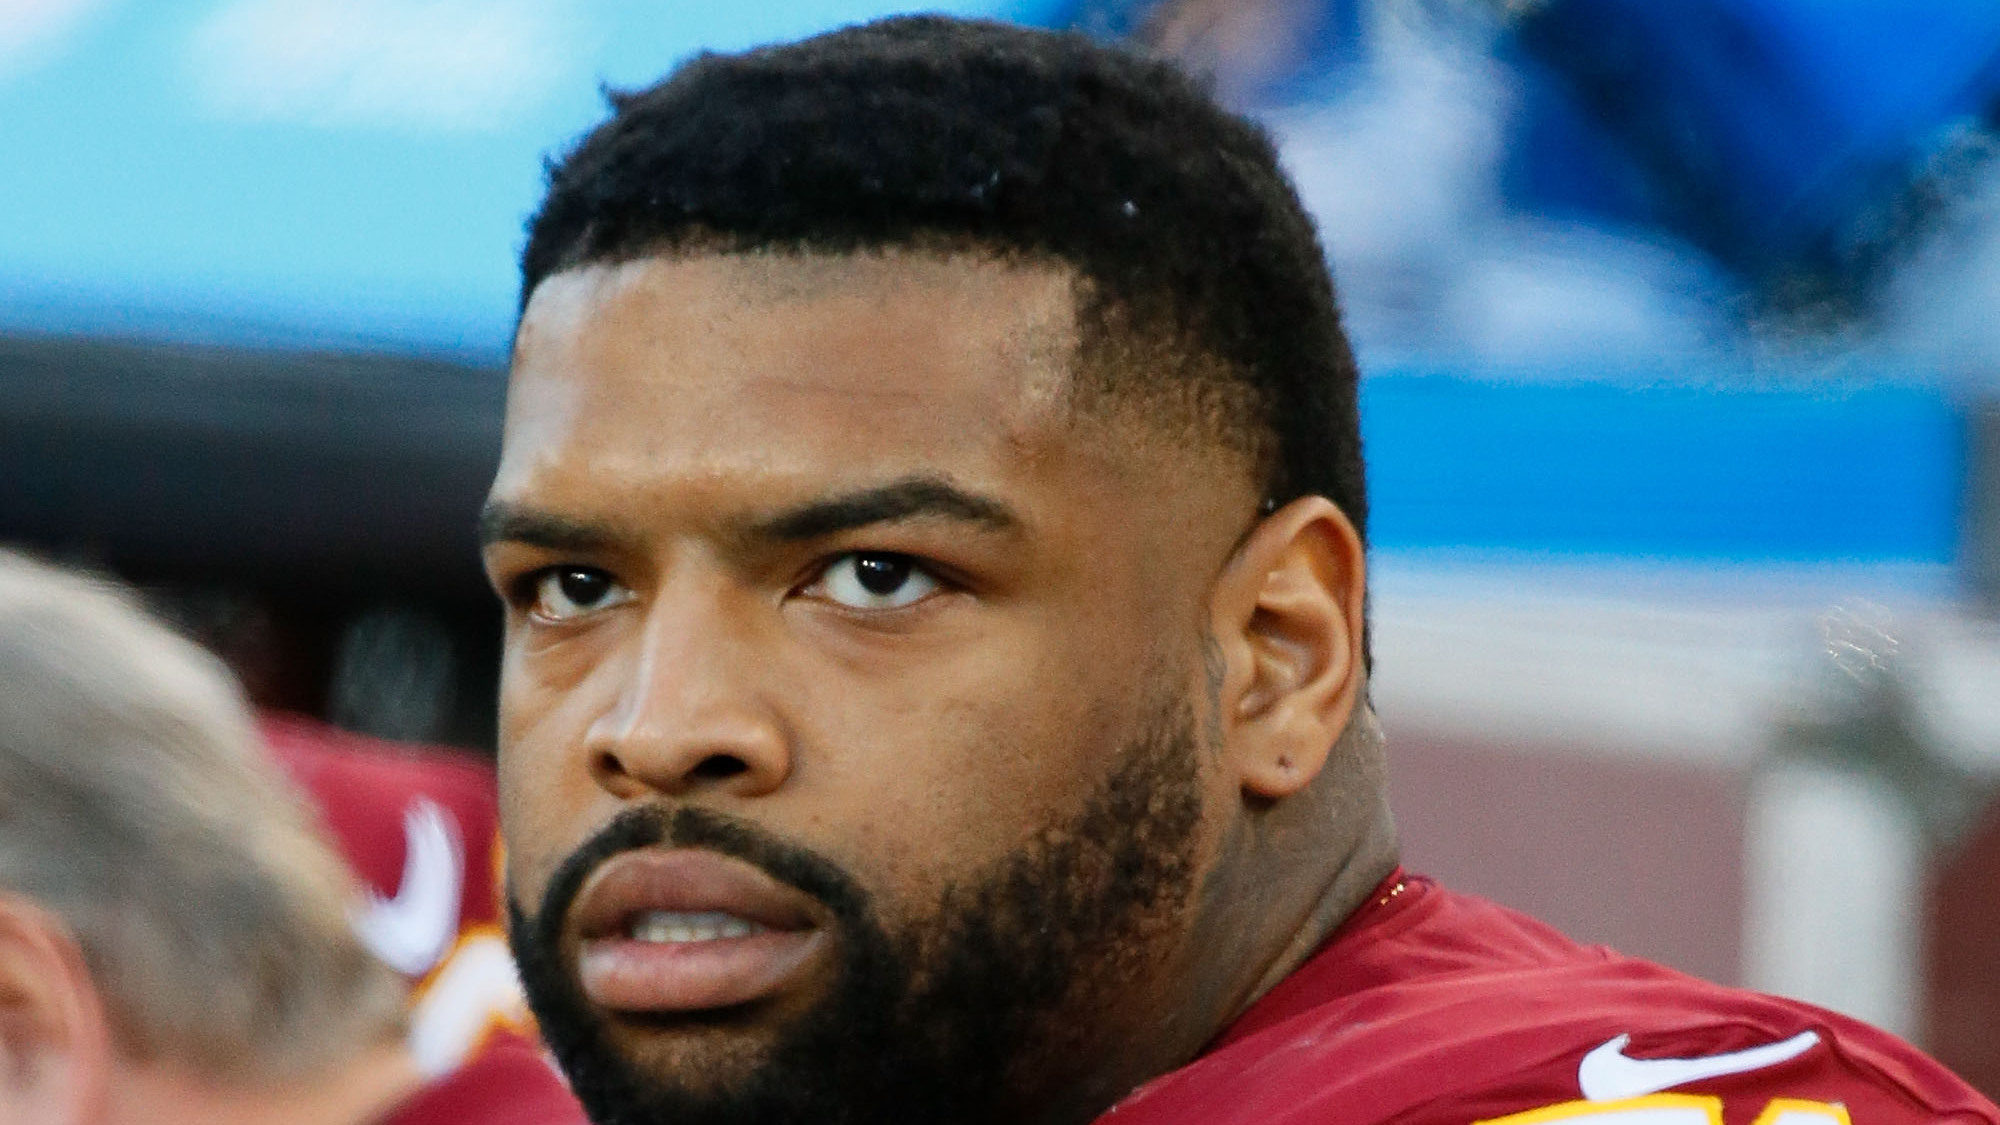 NFL Washington Redskins Offensive Tackle Trent Williams Retirement